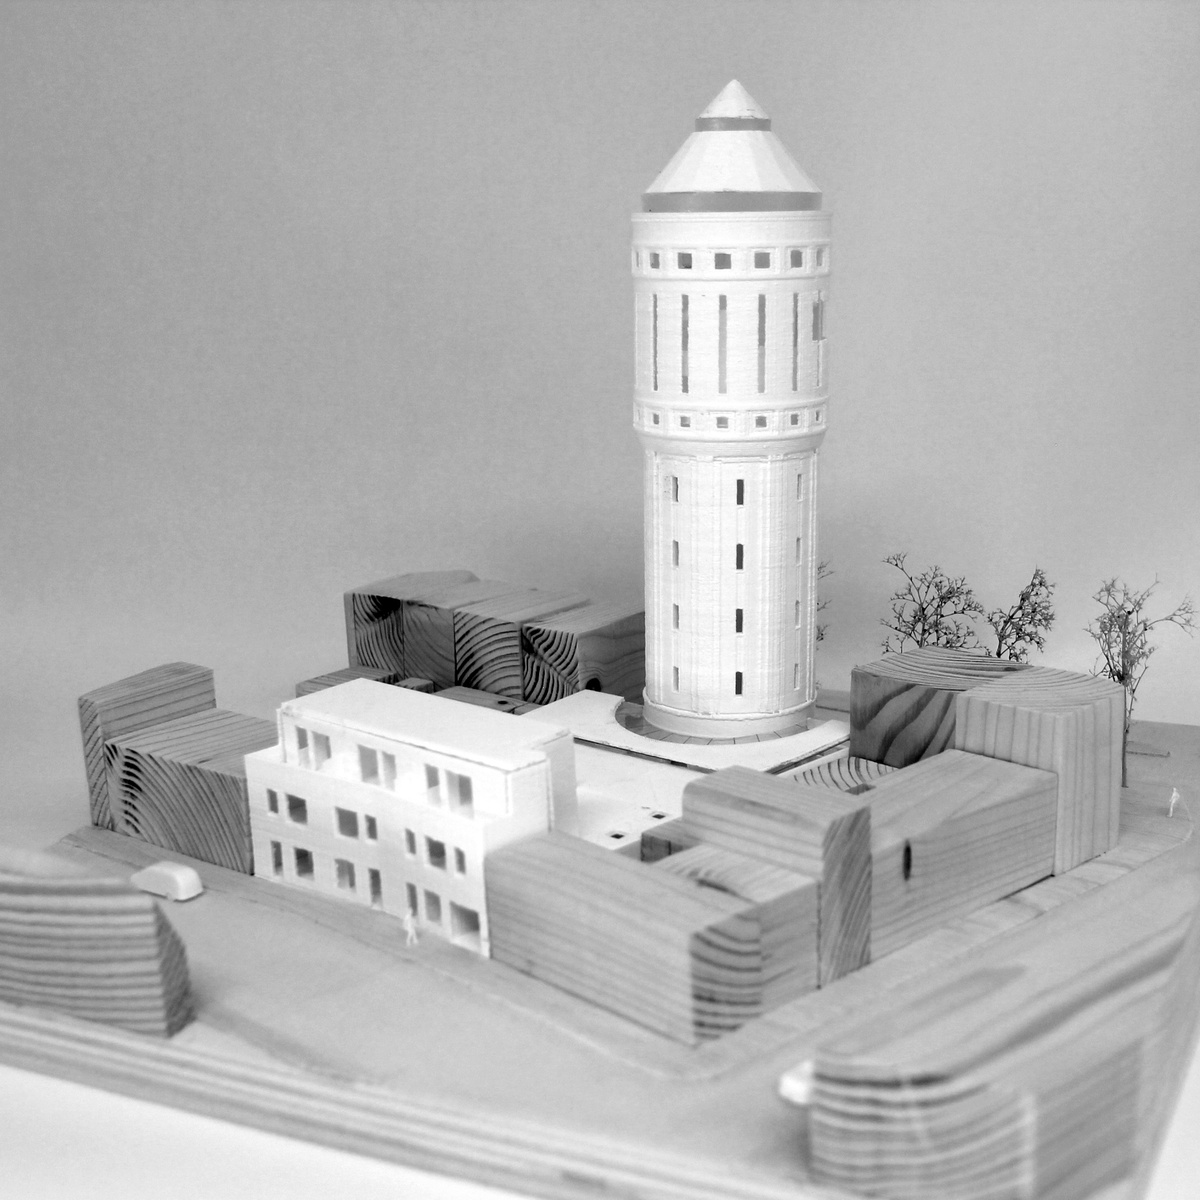 Water_tower-Zecc-masonry-model_03.JPG